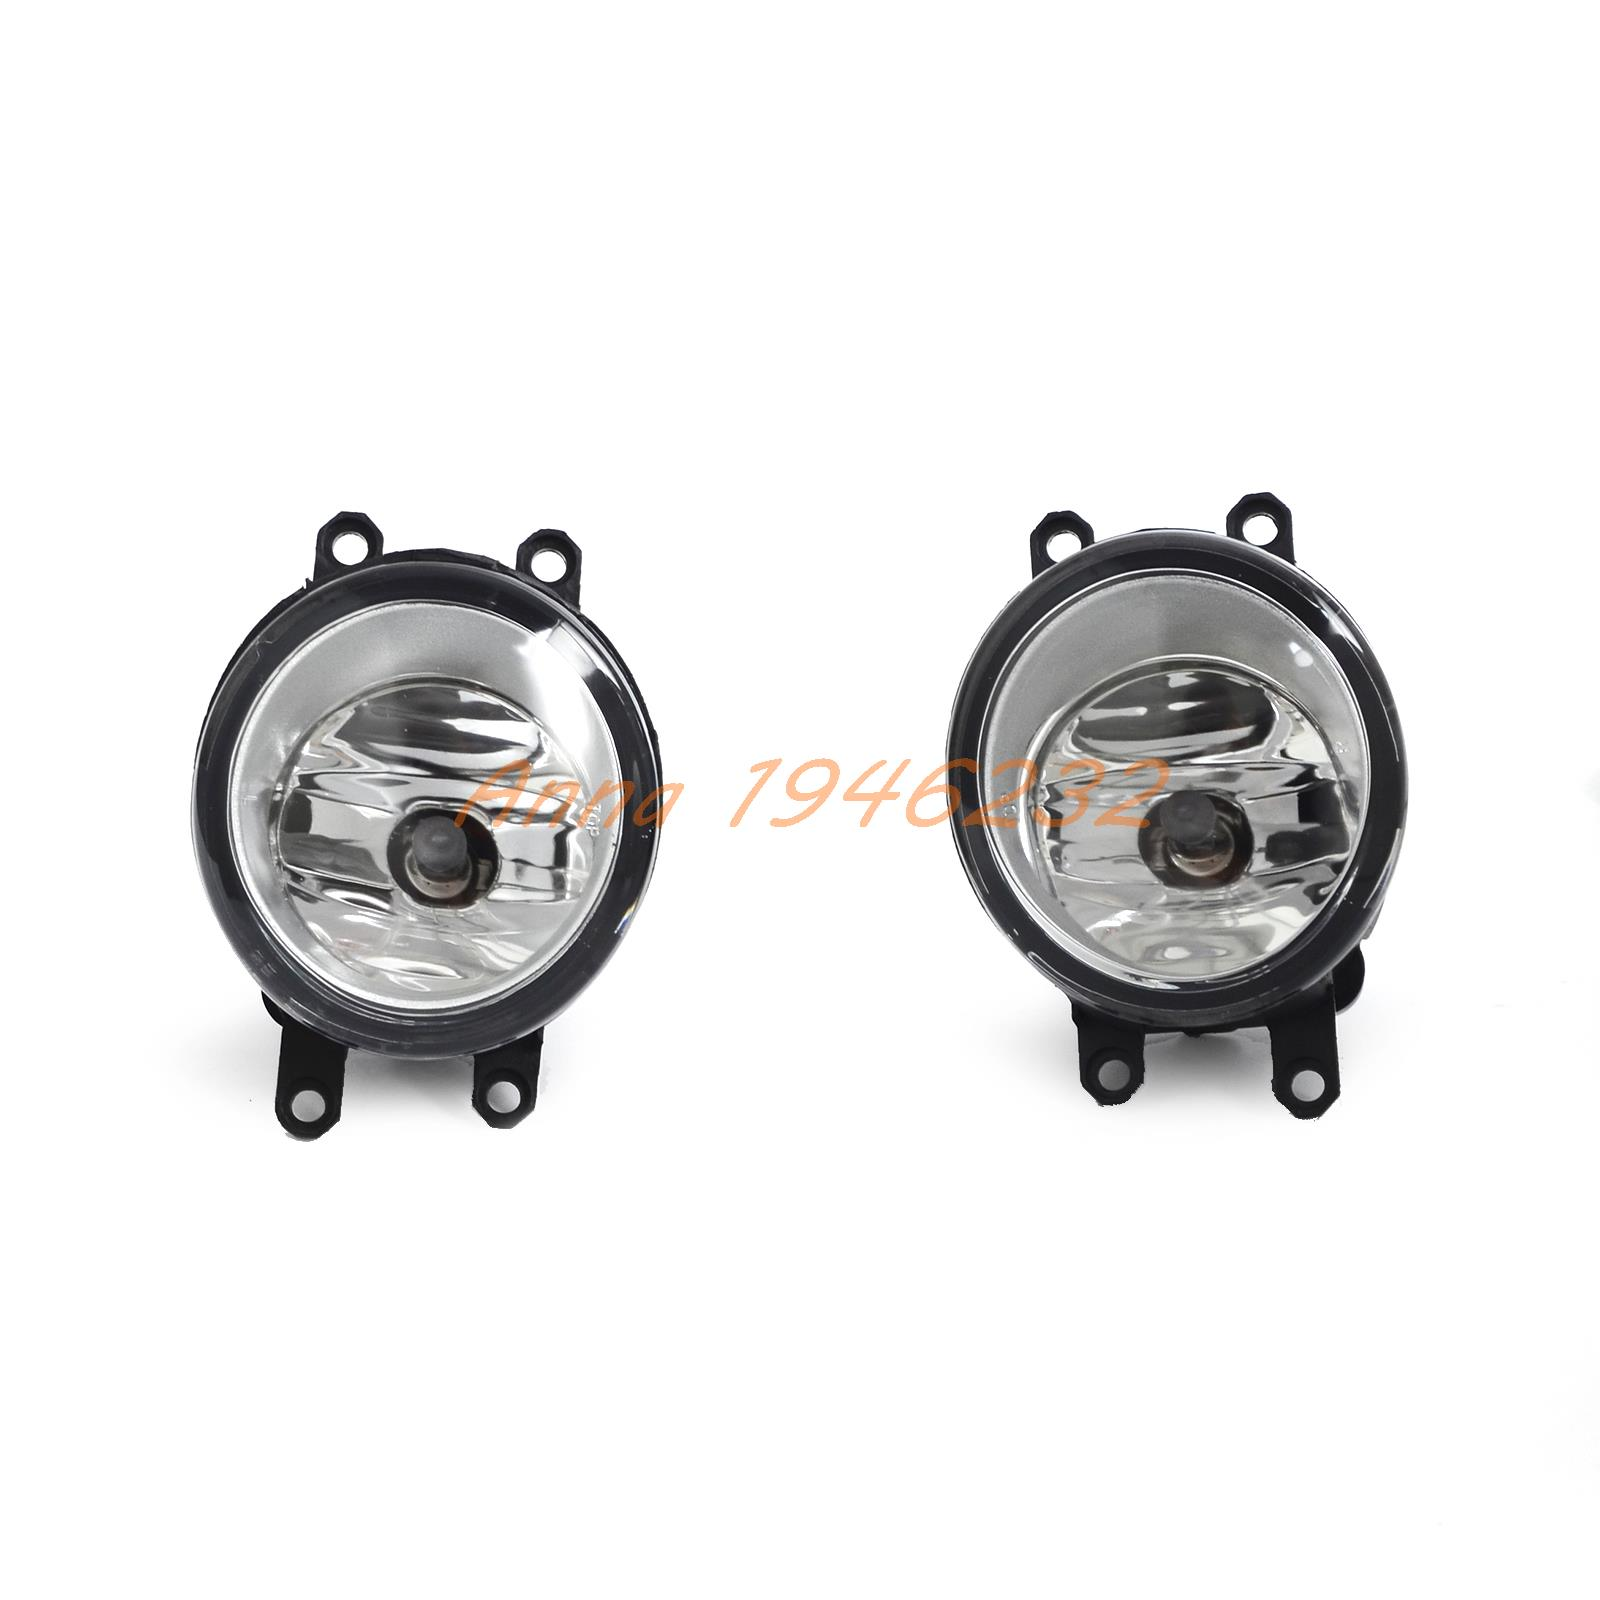 NICECNC Fog Light Lamps with H11 Bulbs For Toyota Avalon Corolla Camry Highlander Hybrid Matrix Prius Sienna Yaris Solara RAV4 палатка norfin zope 2 nf 10401